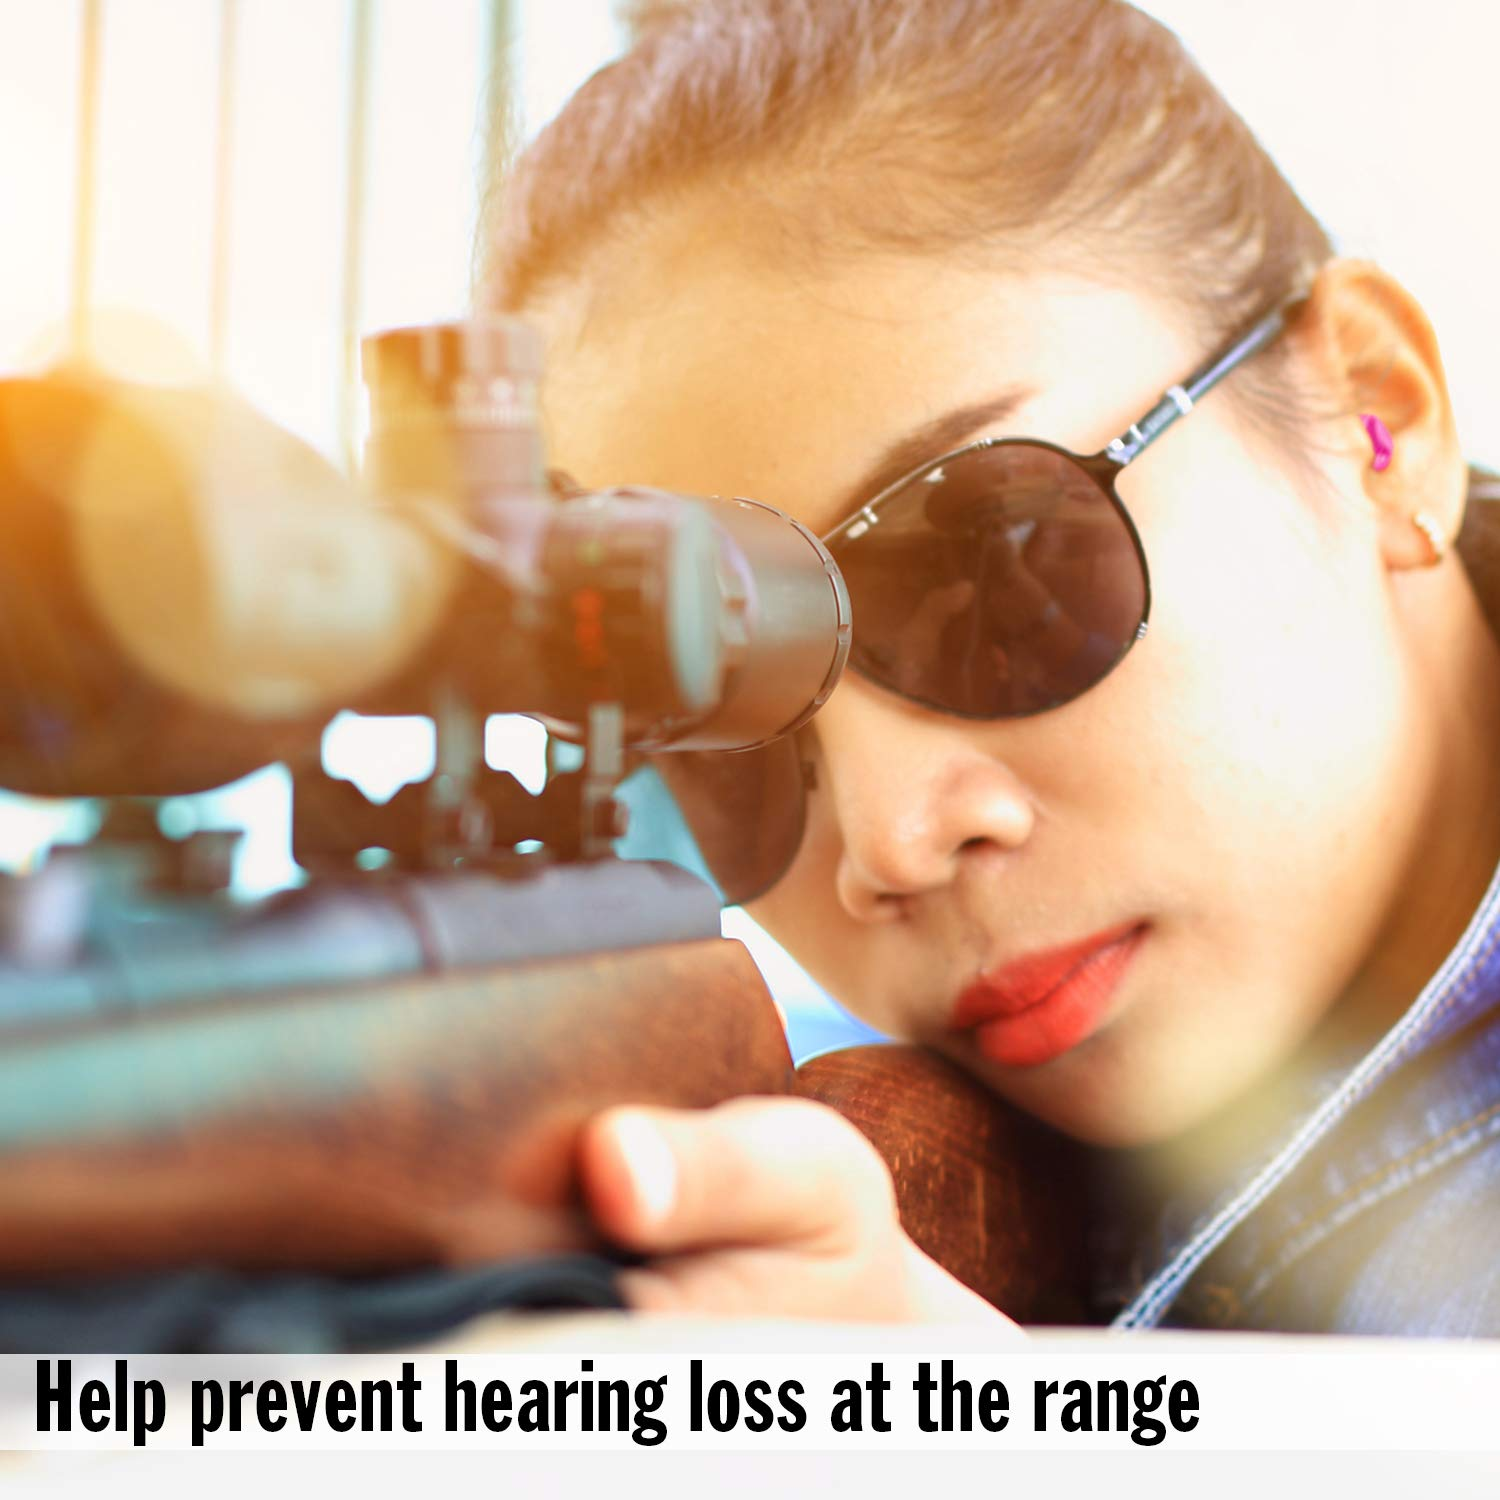 Skeet and Trap Shooting Macks For Her Soft Foam Shooting Earplugs Small Ear Plugs for Hunting Tactical 7 Pair with Travel Case Target